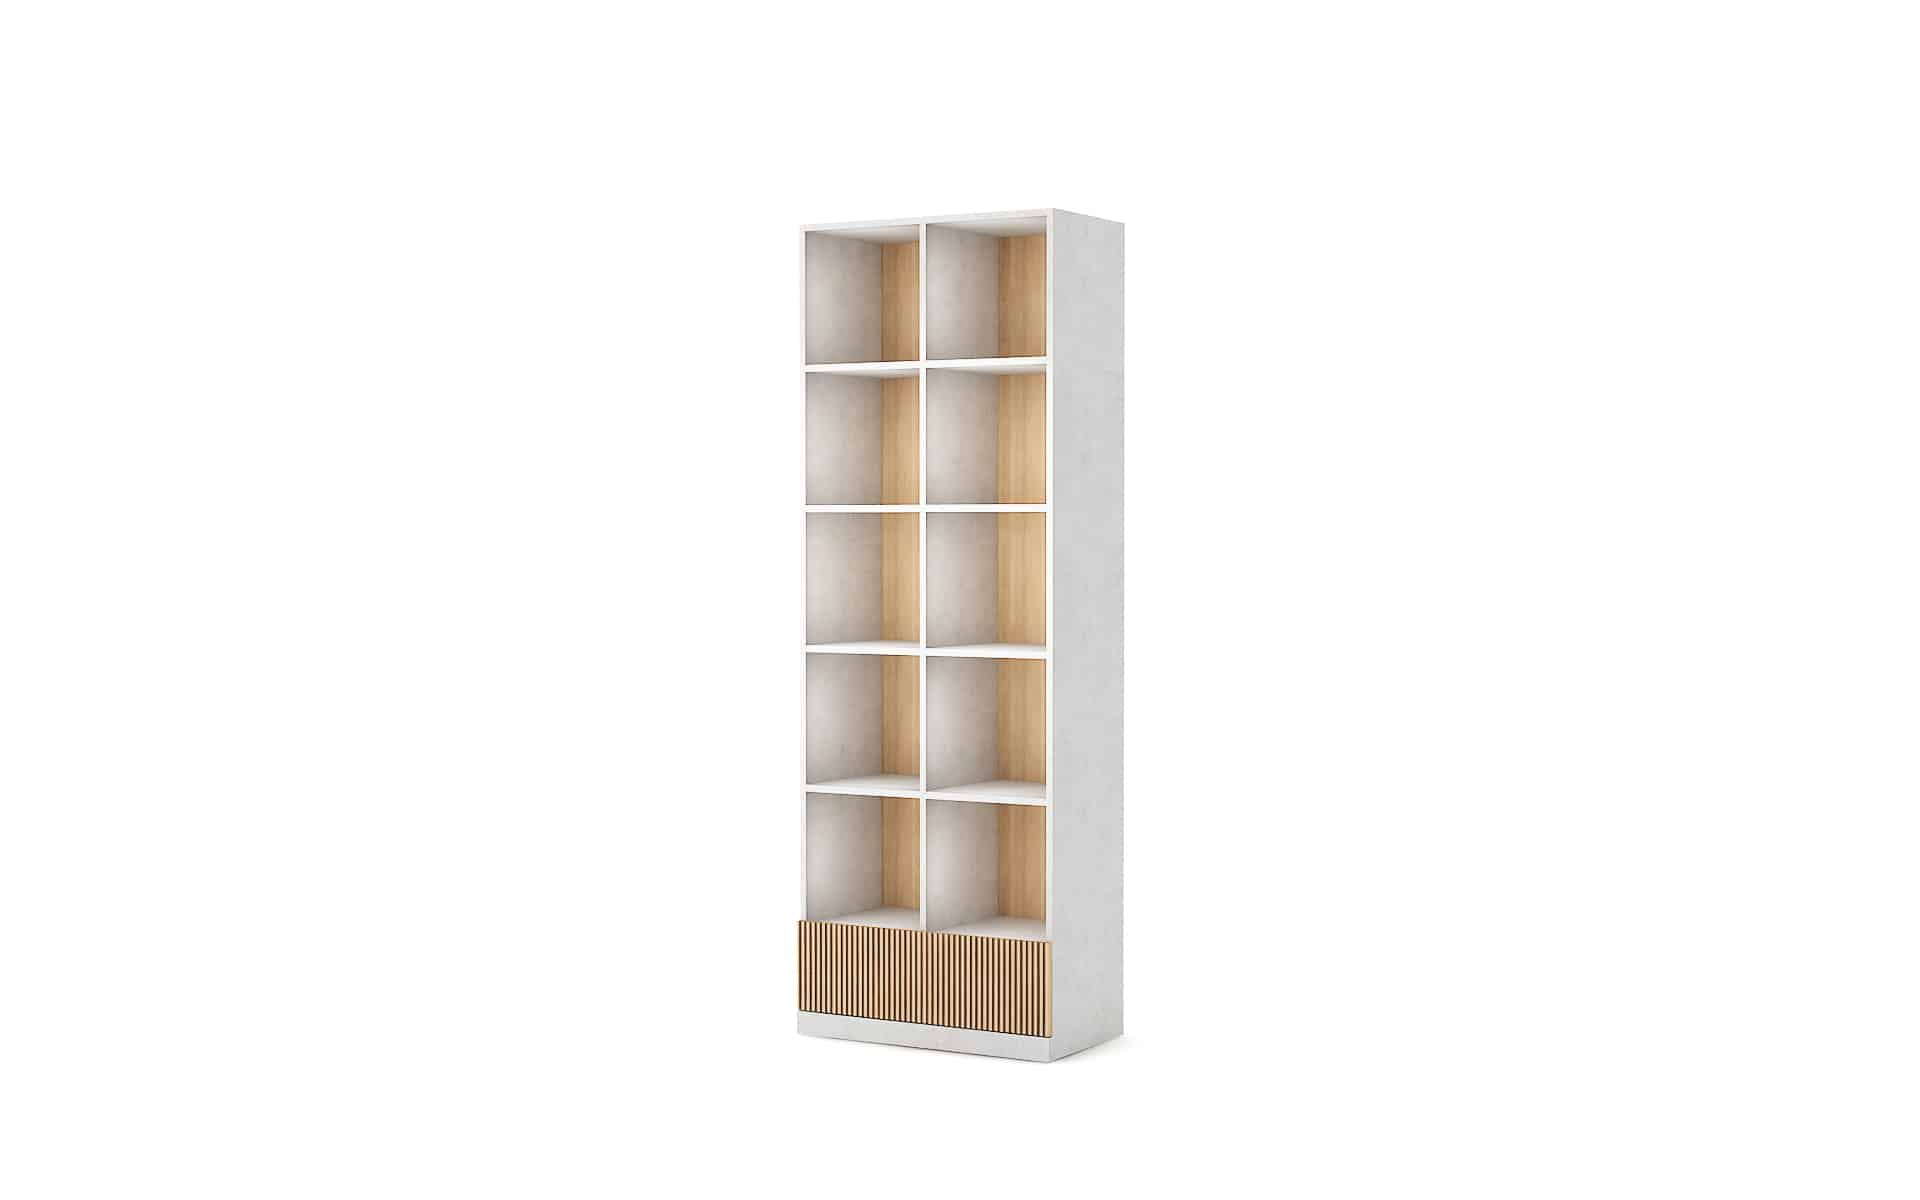 Shelving unit Zero image 2